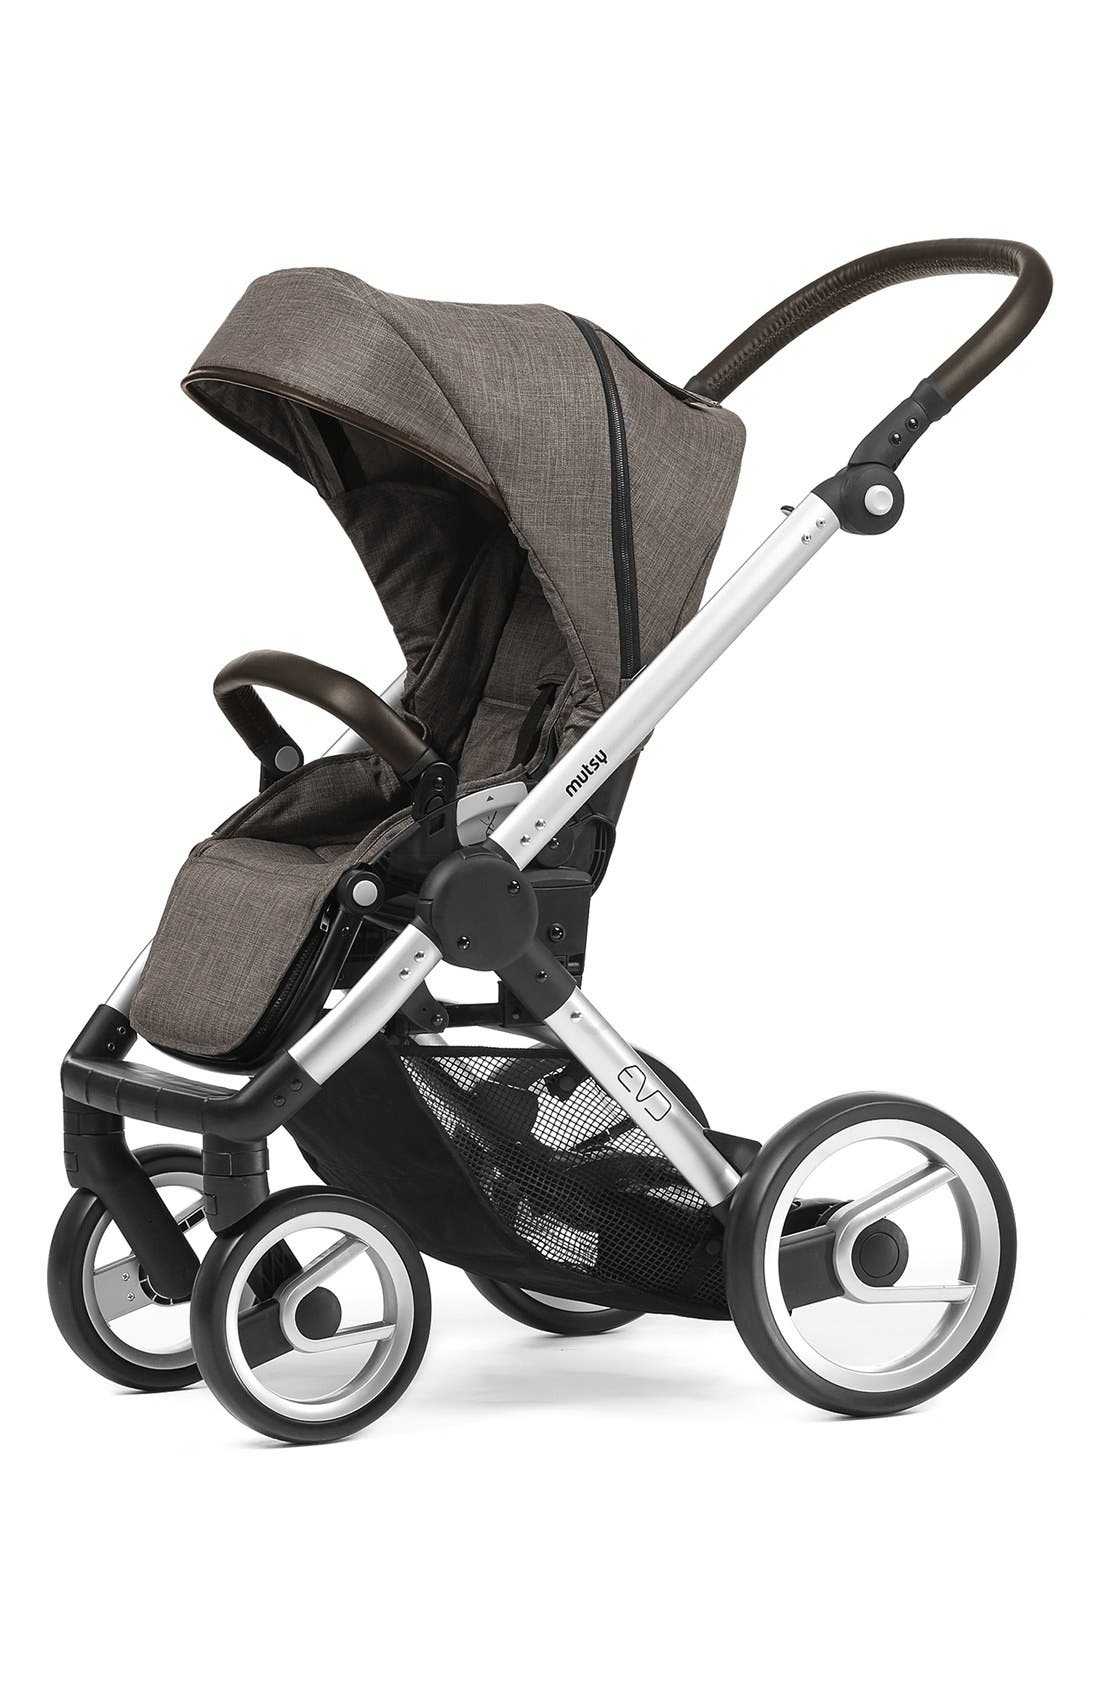 Mutsy 'Evo - Farmer Earth' Stroller